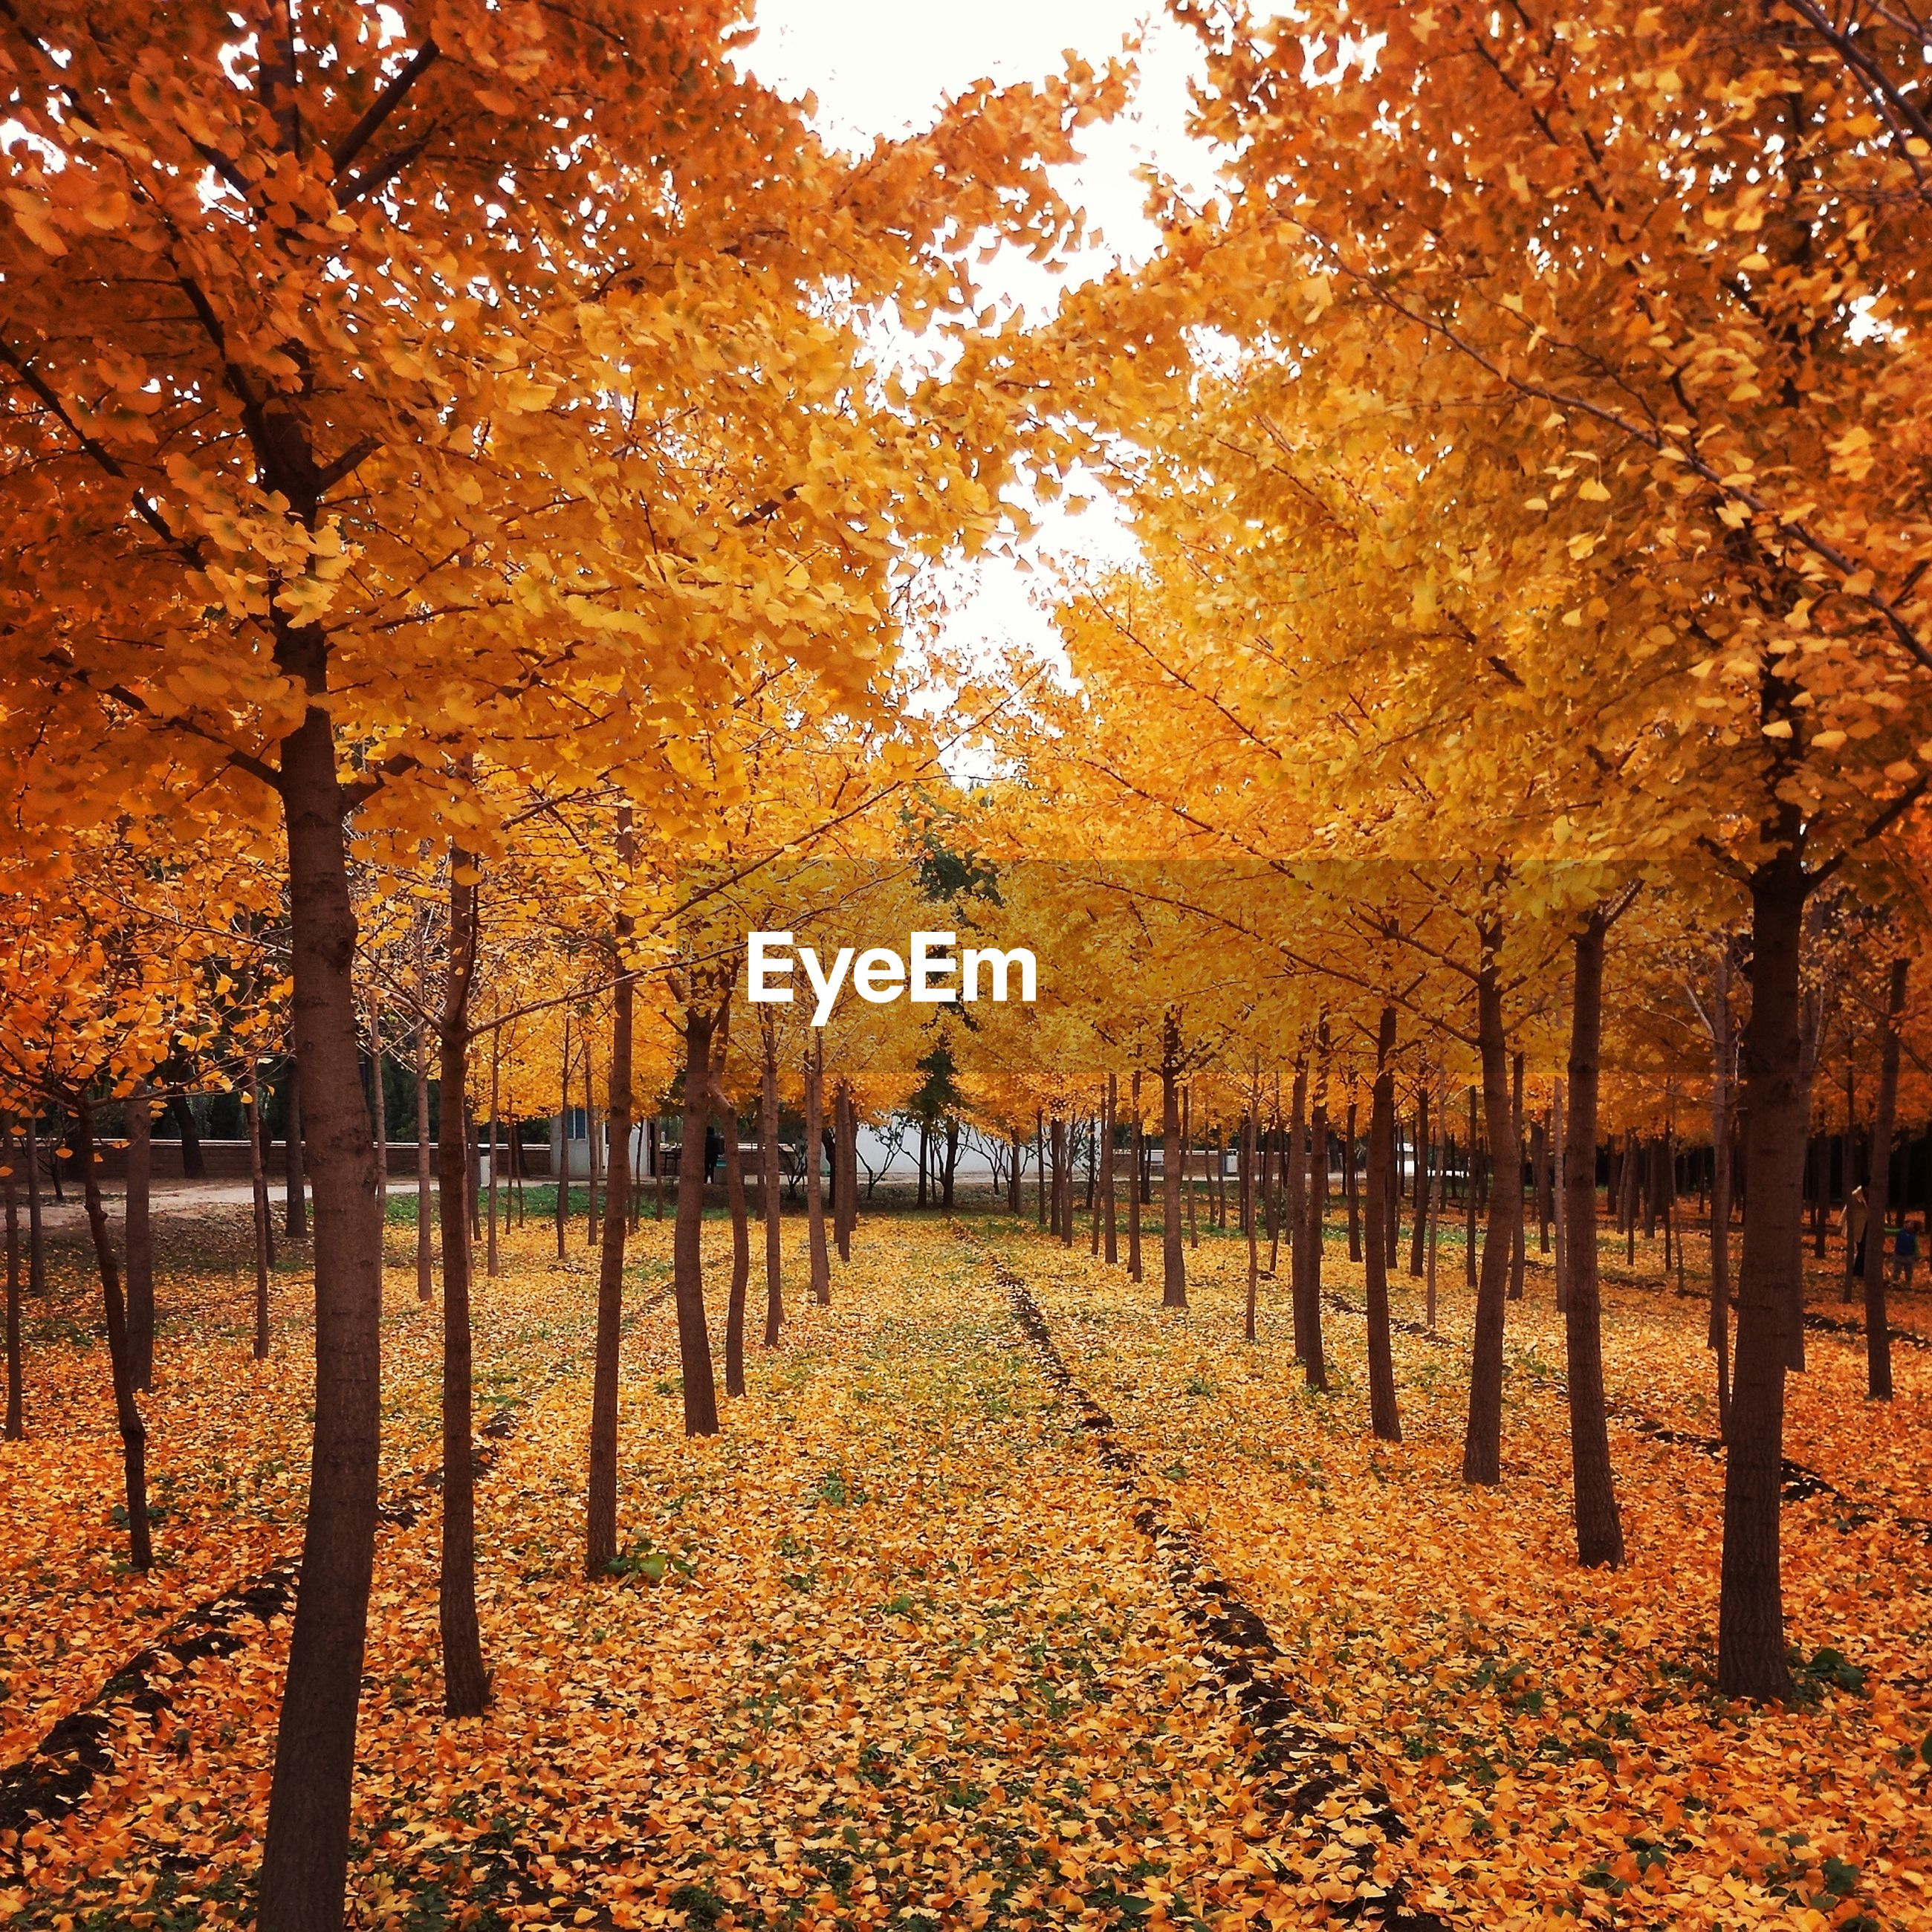 autumn, tree, change, season, tranquility, leaf, orange color, nature, beauty in nature, tranquil scene, scenics, fallen, growth, park - man made space, tree trunk, branch, yellow, landscape, outdoors, day